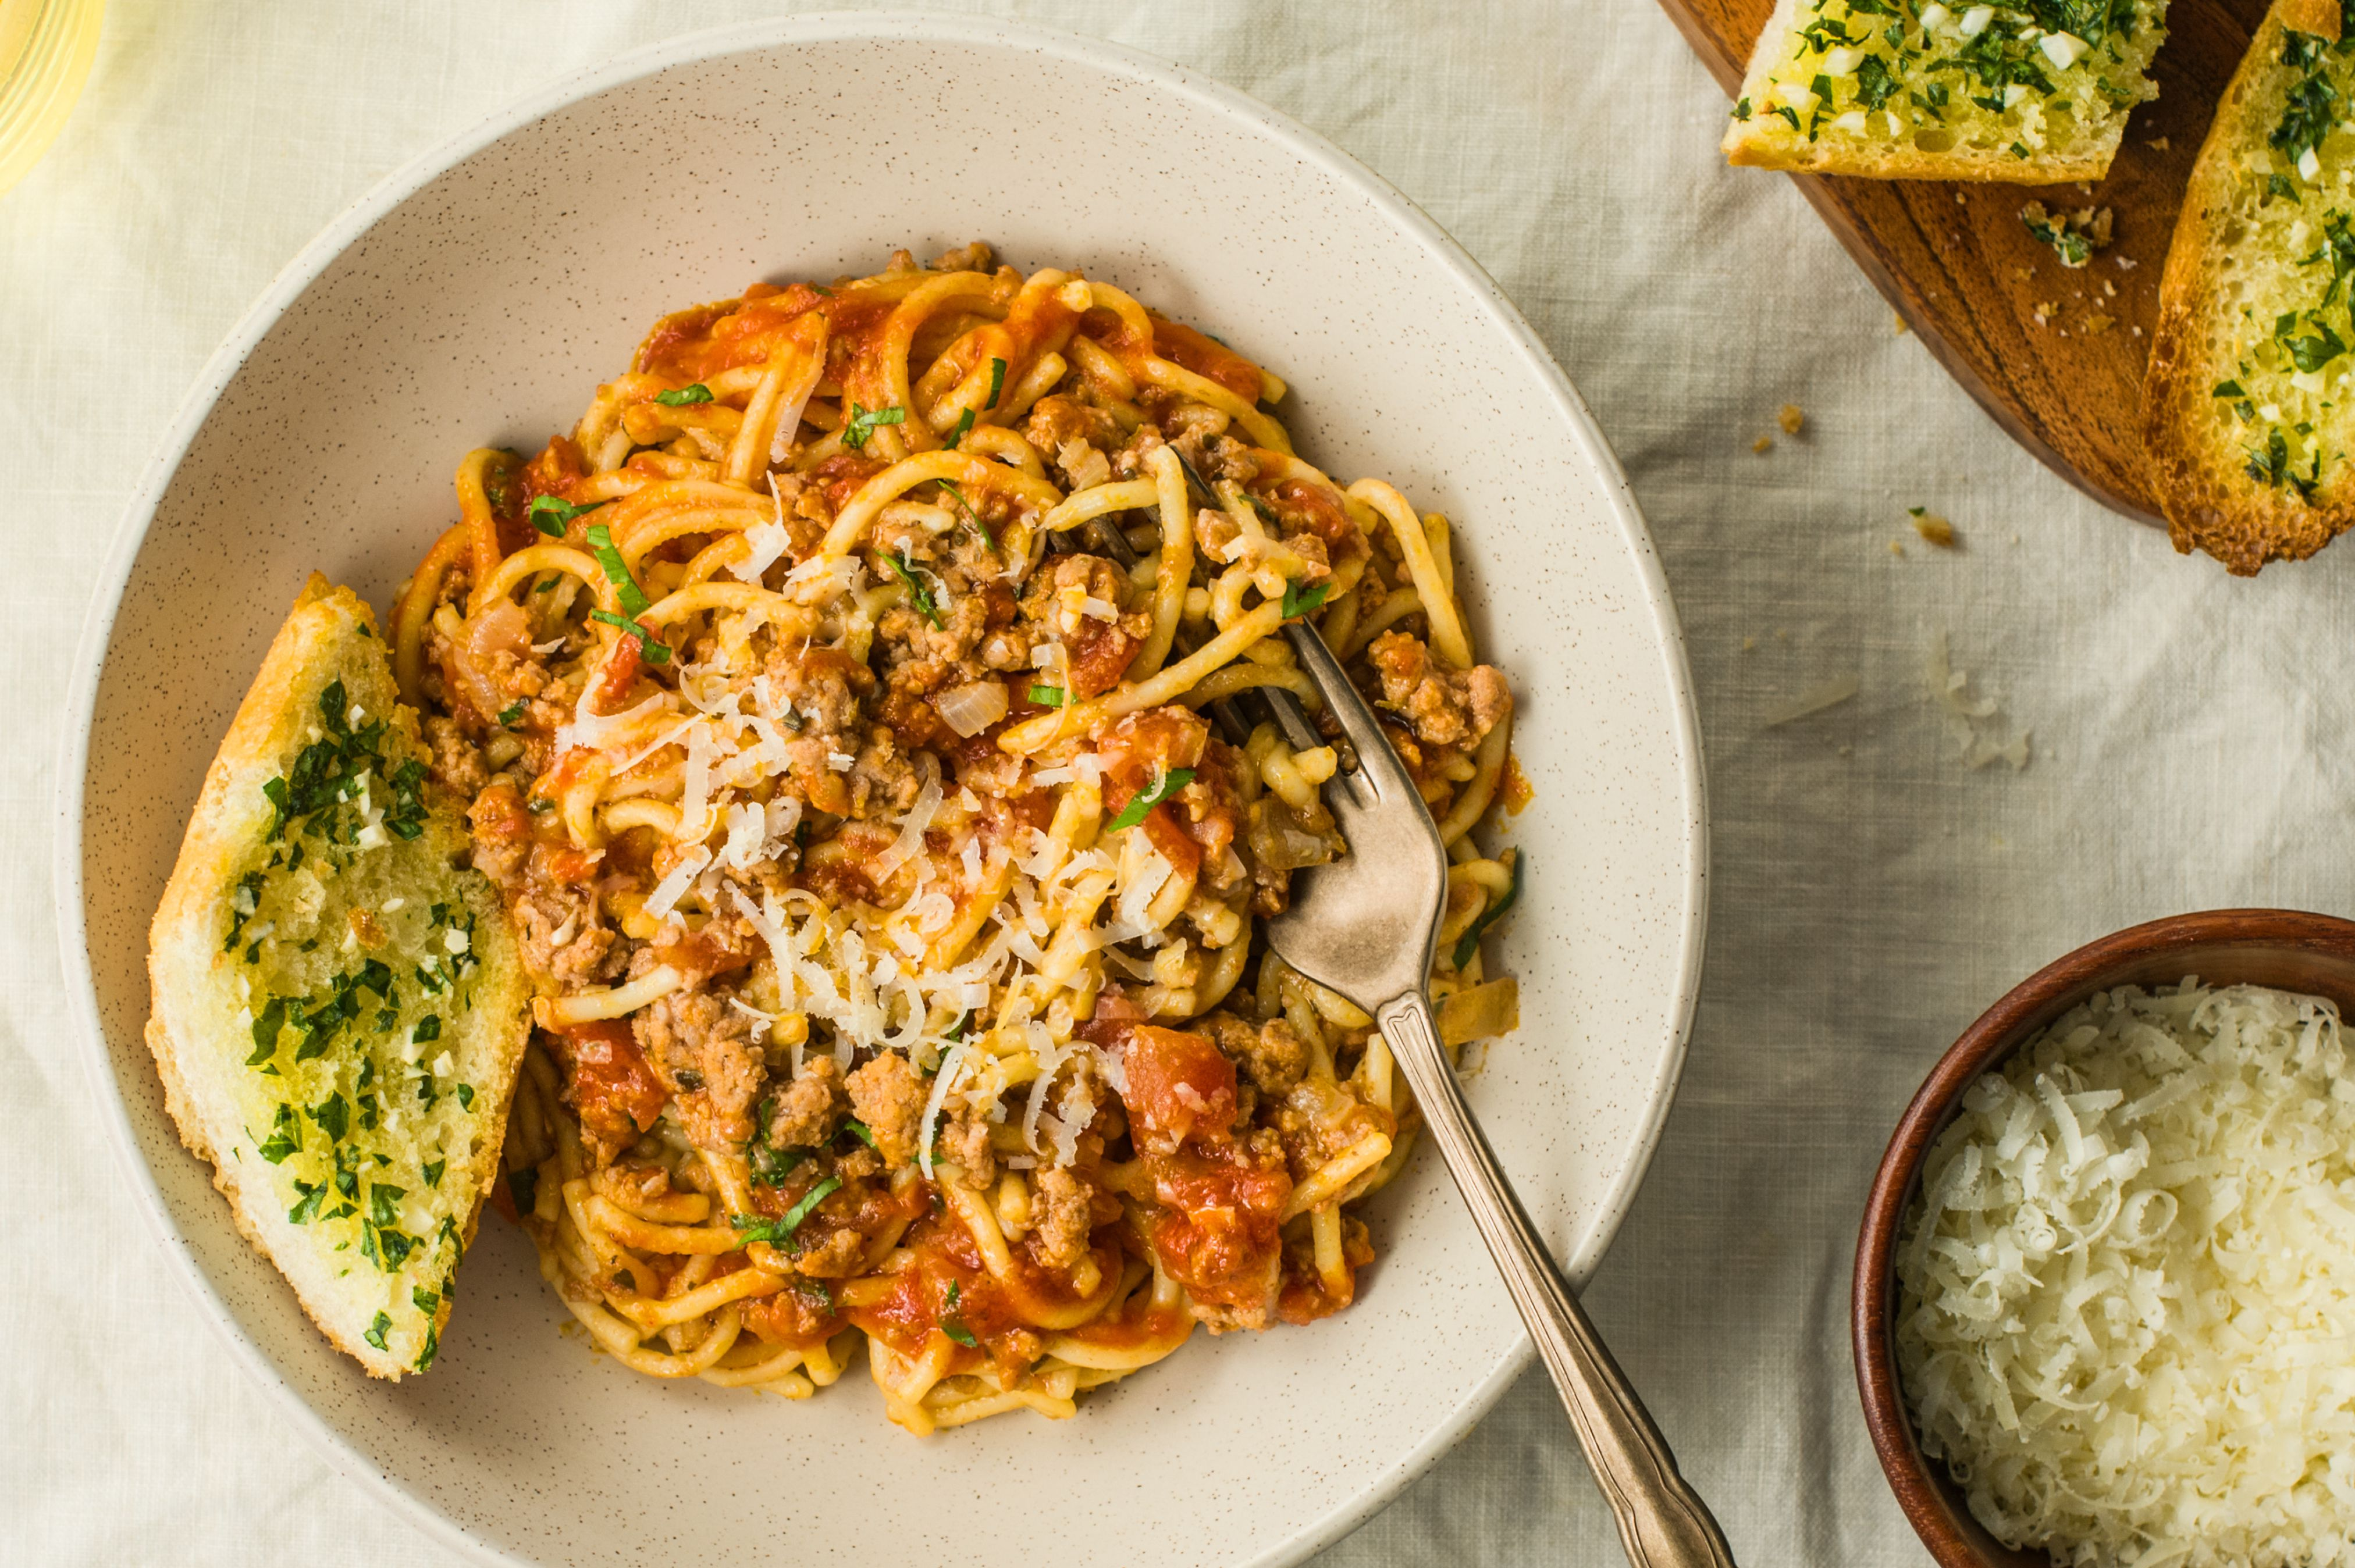 This Instant Pot Spaghetti Dinner Is Ready in Less Than 30 Minutes